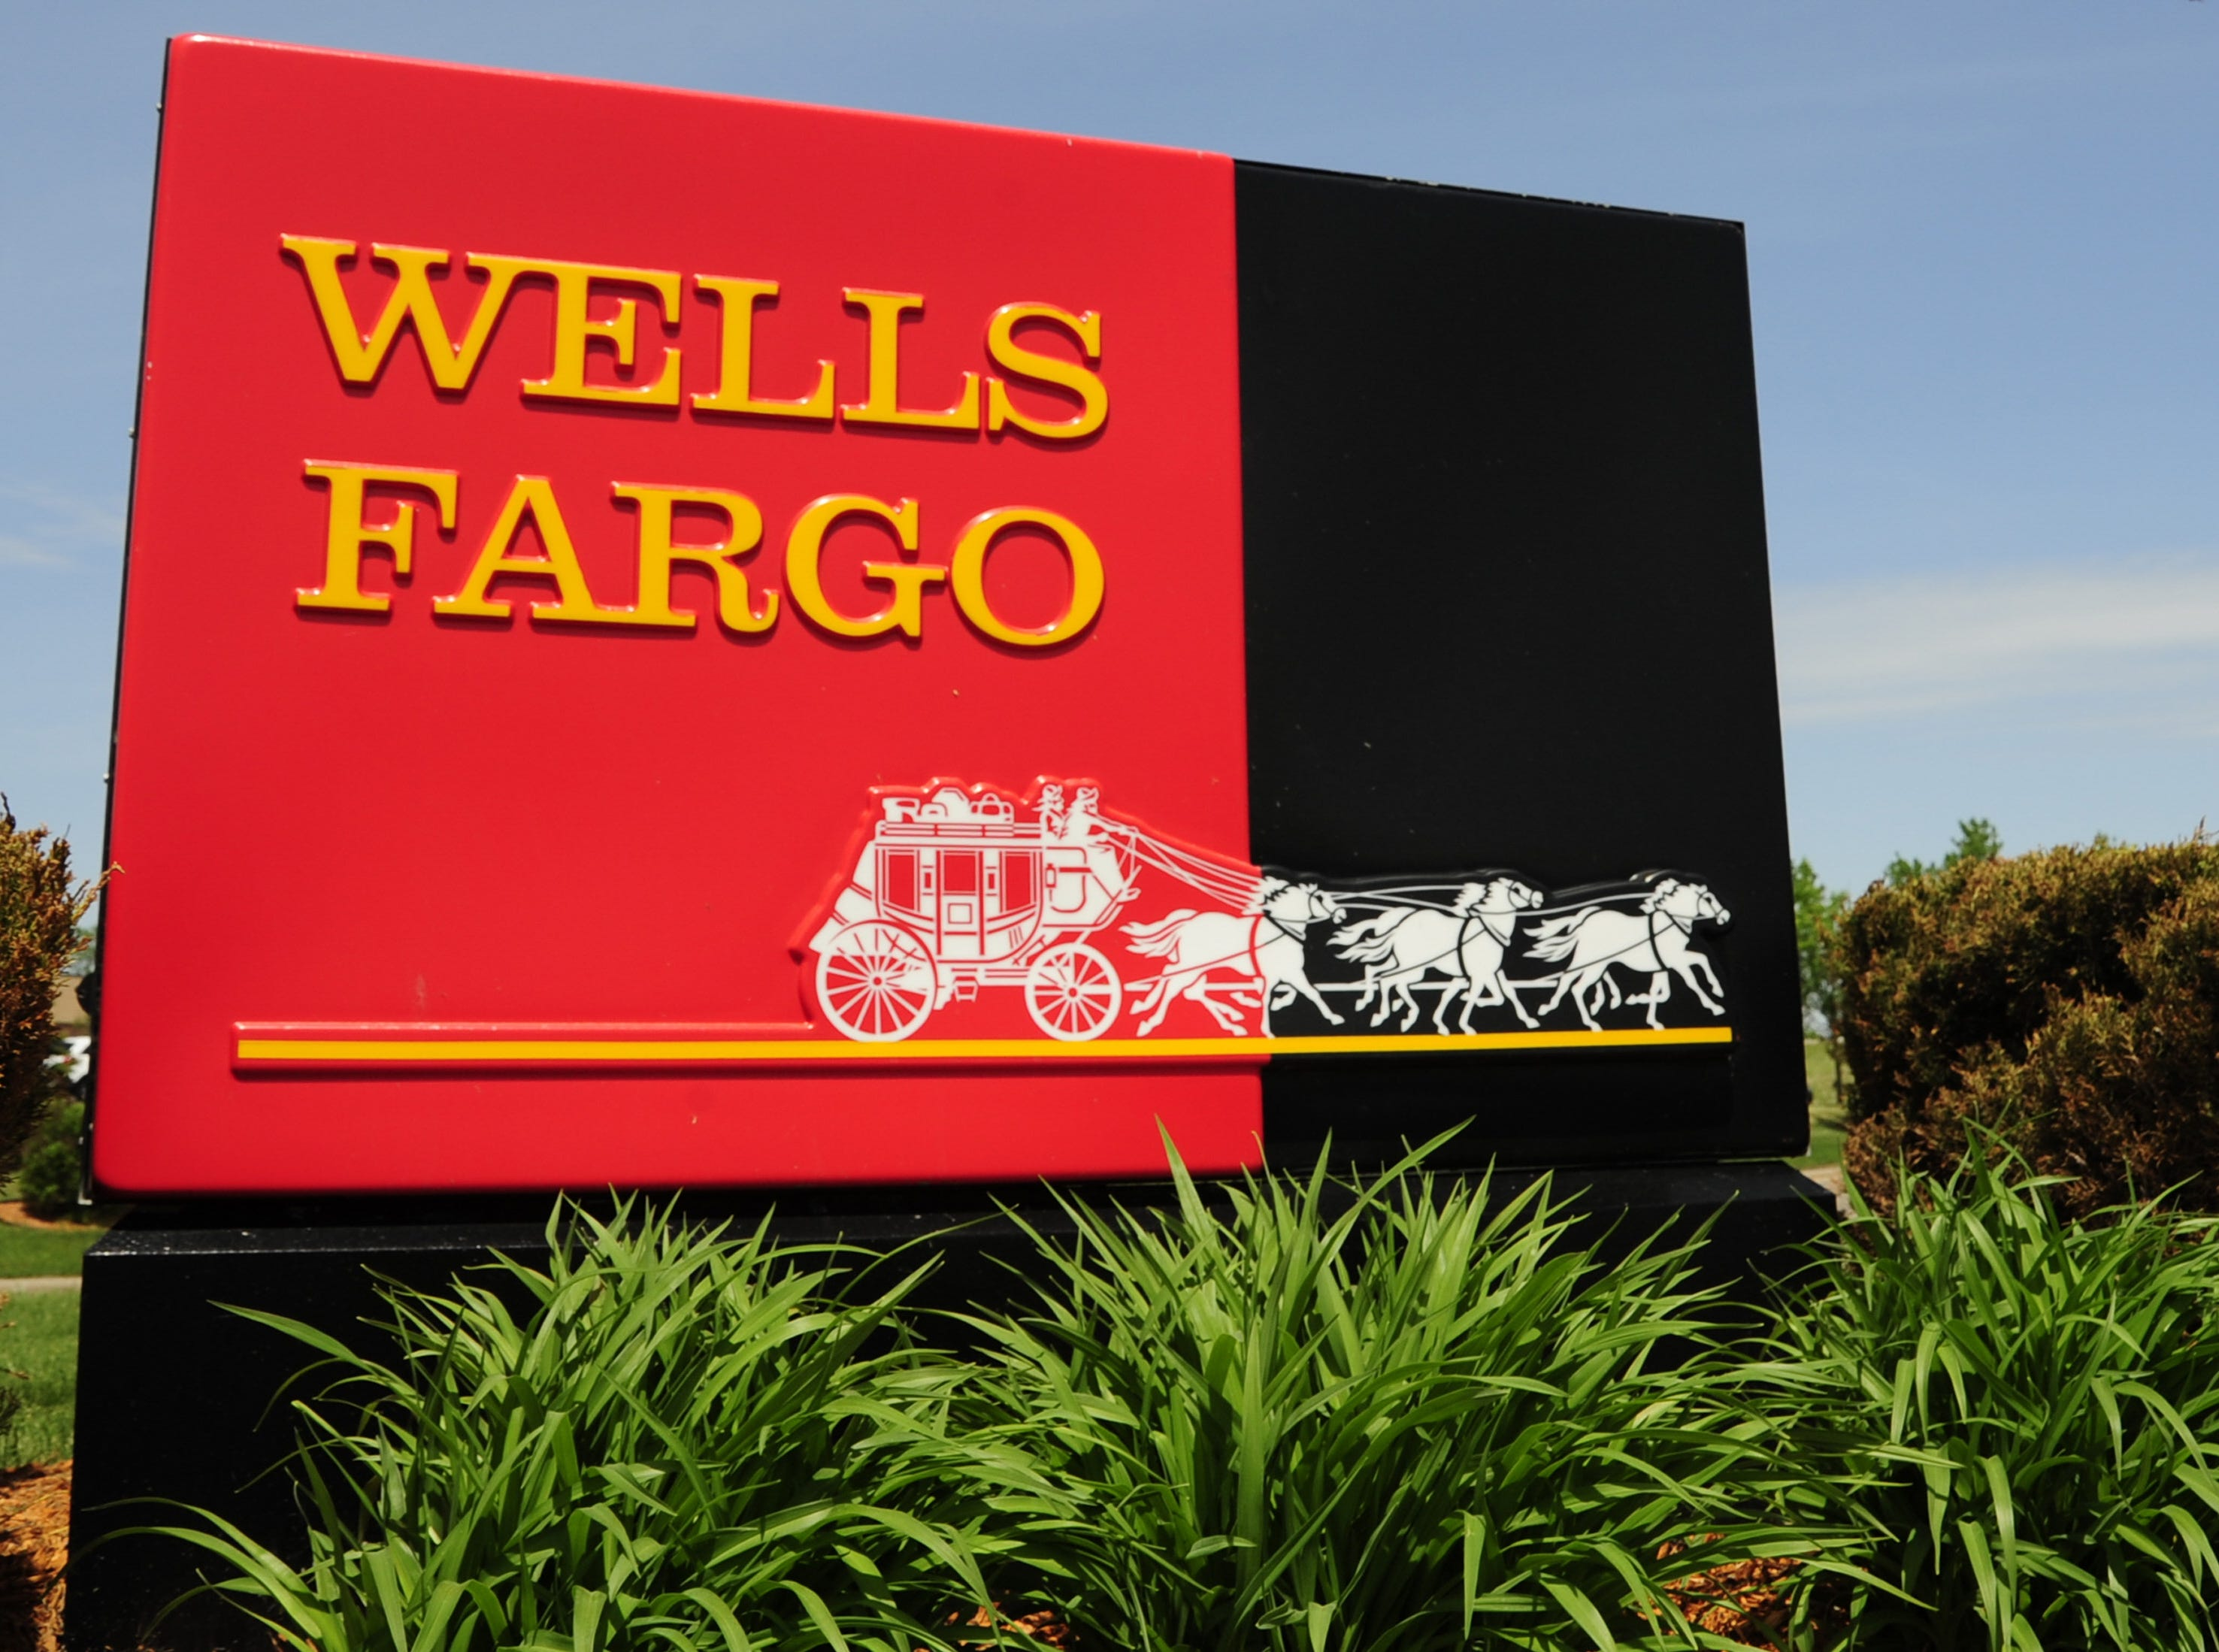 Wells Fargo, hiring 550. The company provides banking and other financial services. More info: wellsfargojobs.com.